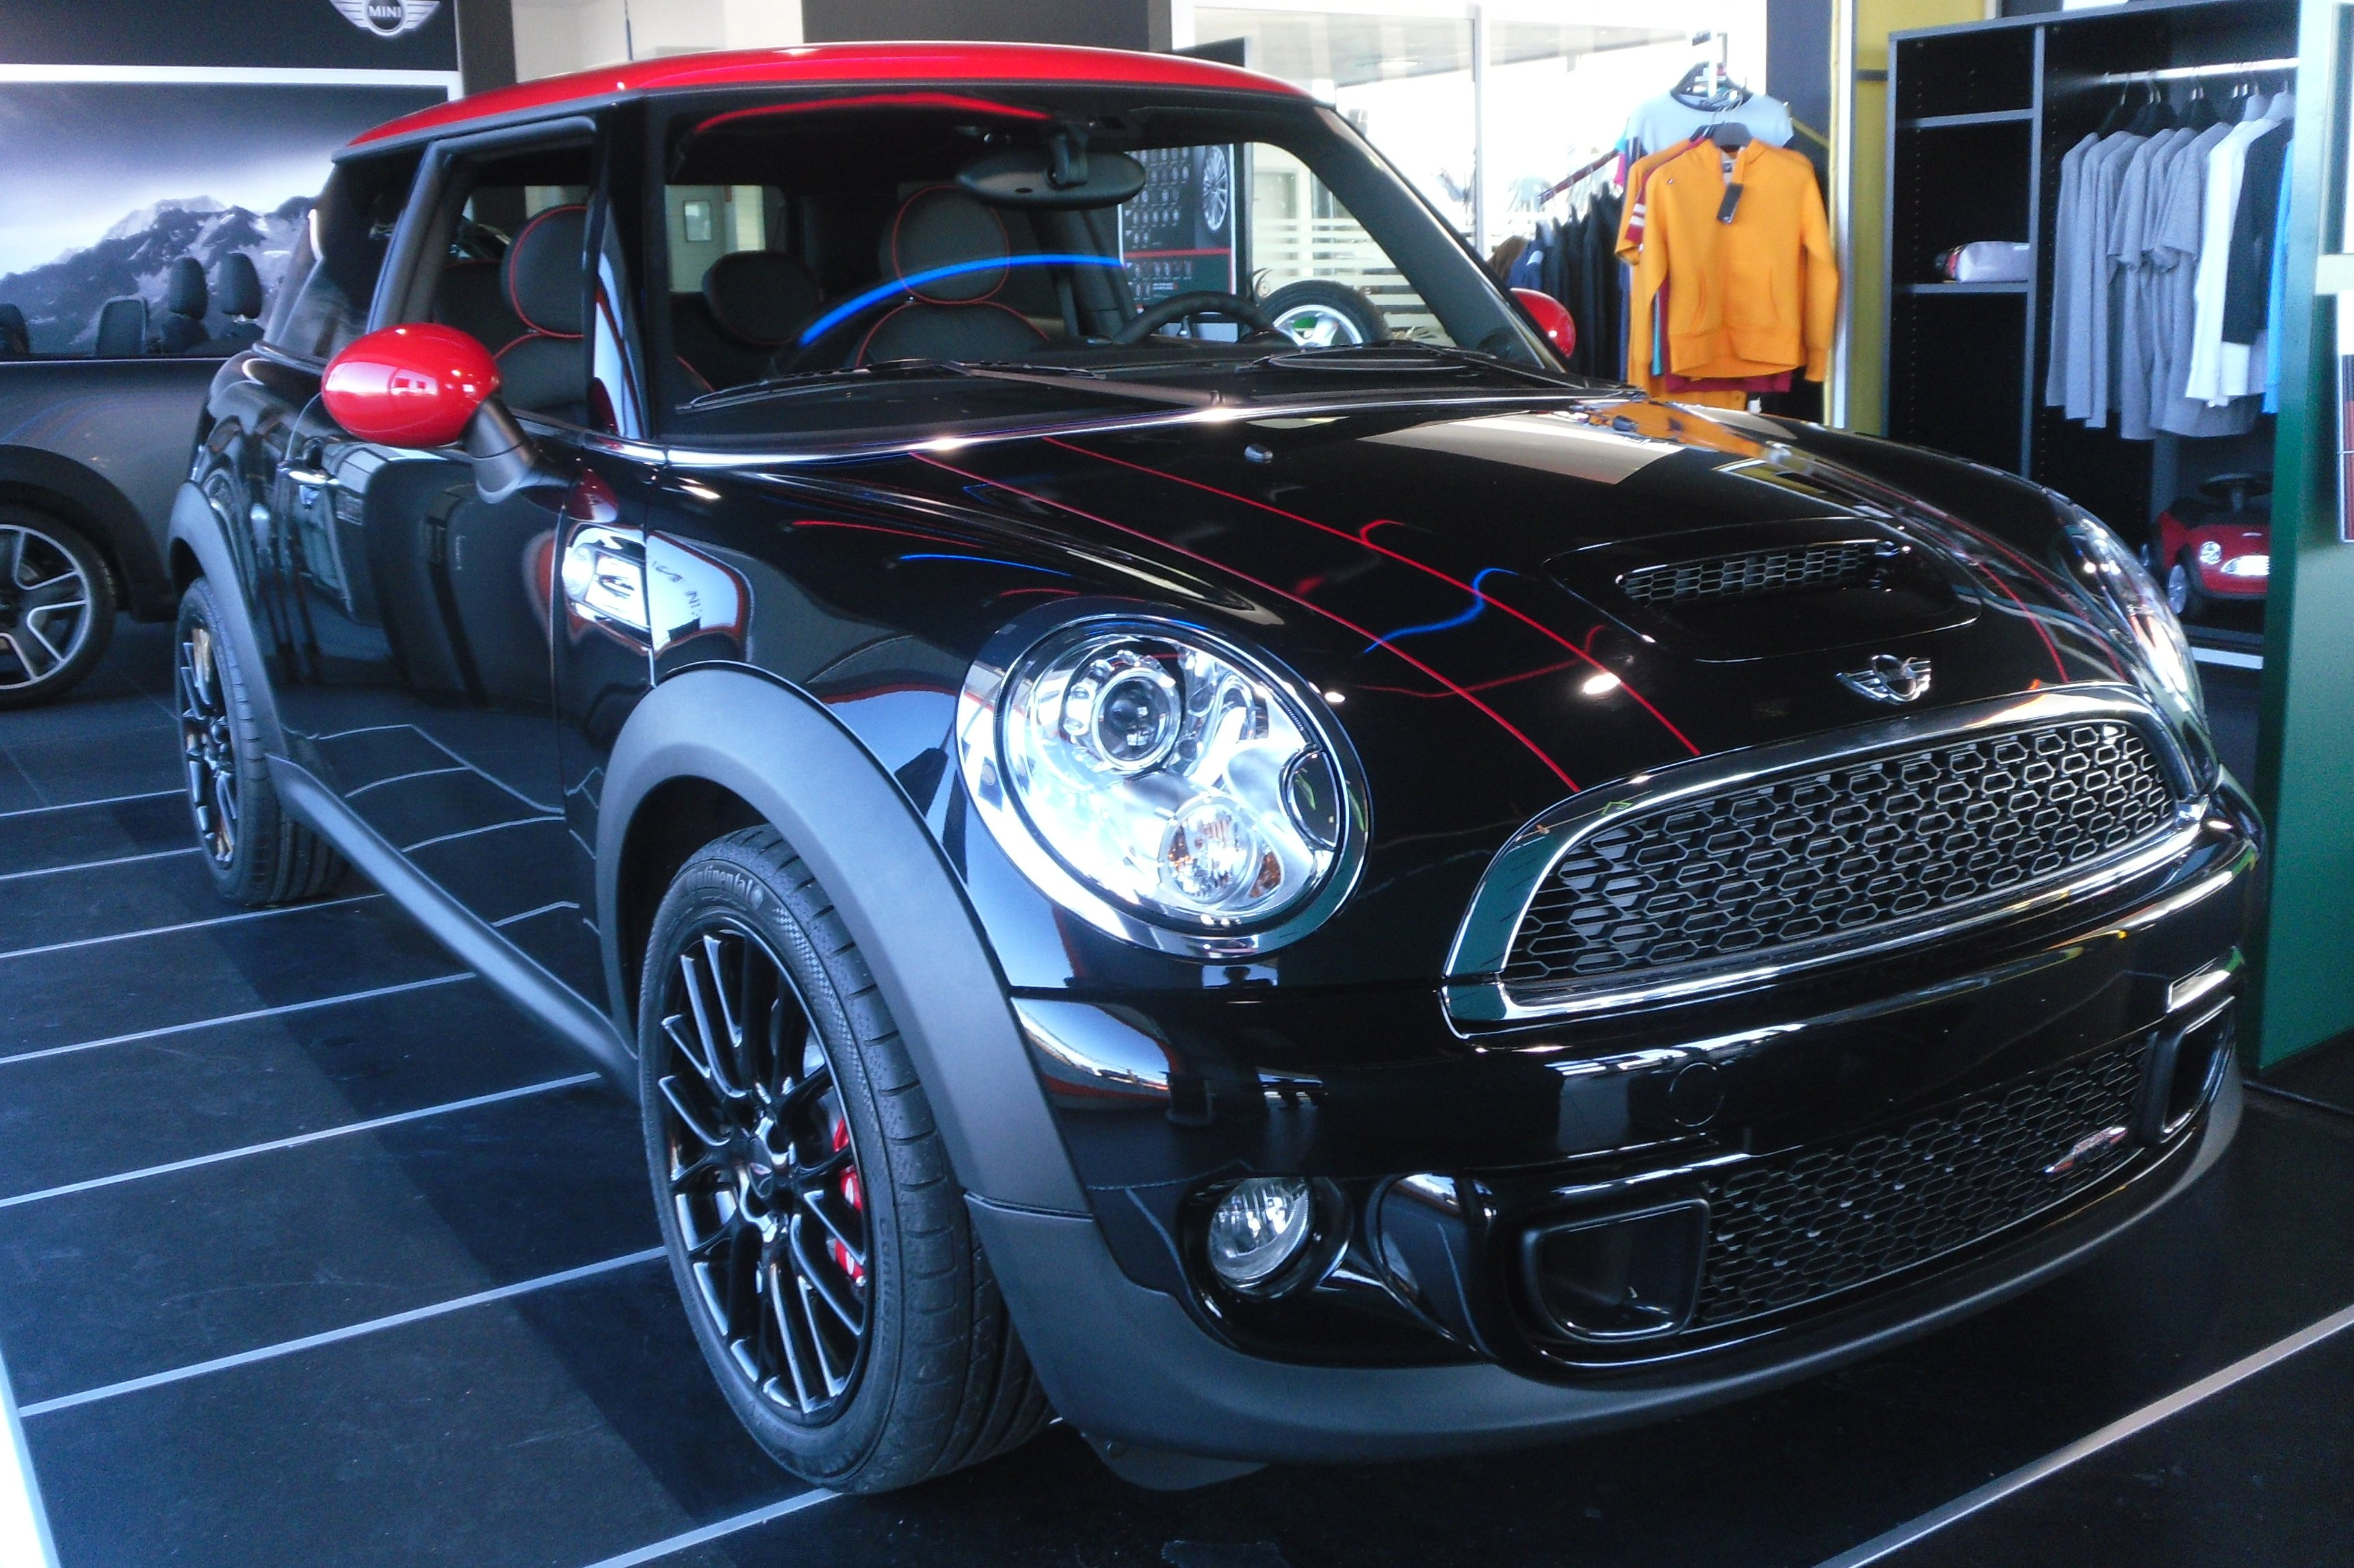 file 00 mini john cooper works 2011 jpg wikipedia. Black Bedroom Furniture Sets. Home Design Ideas